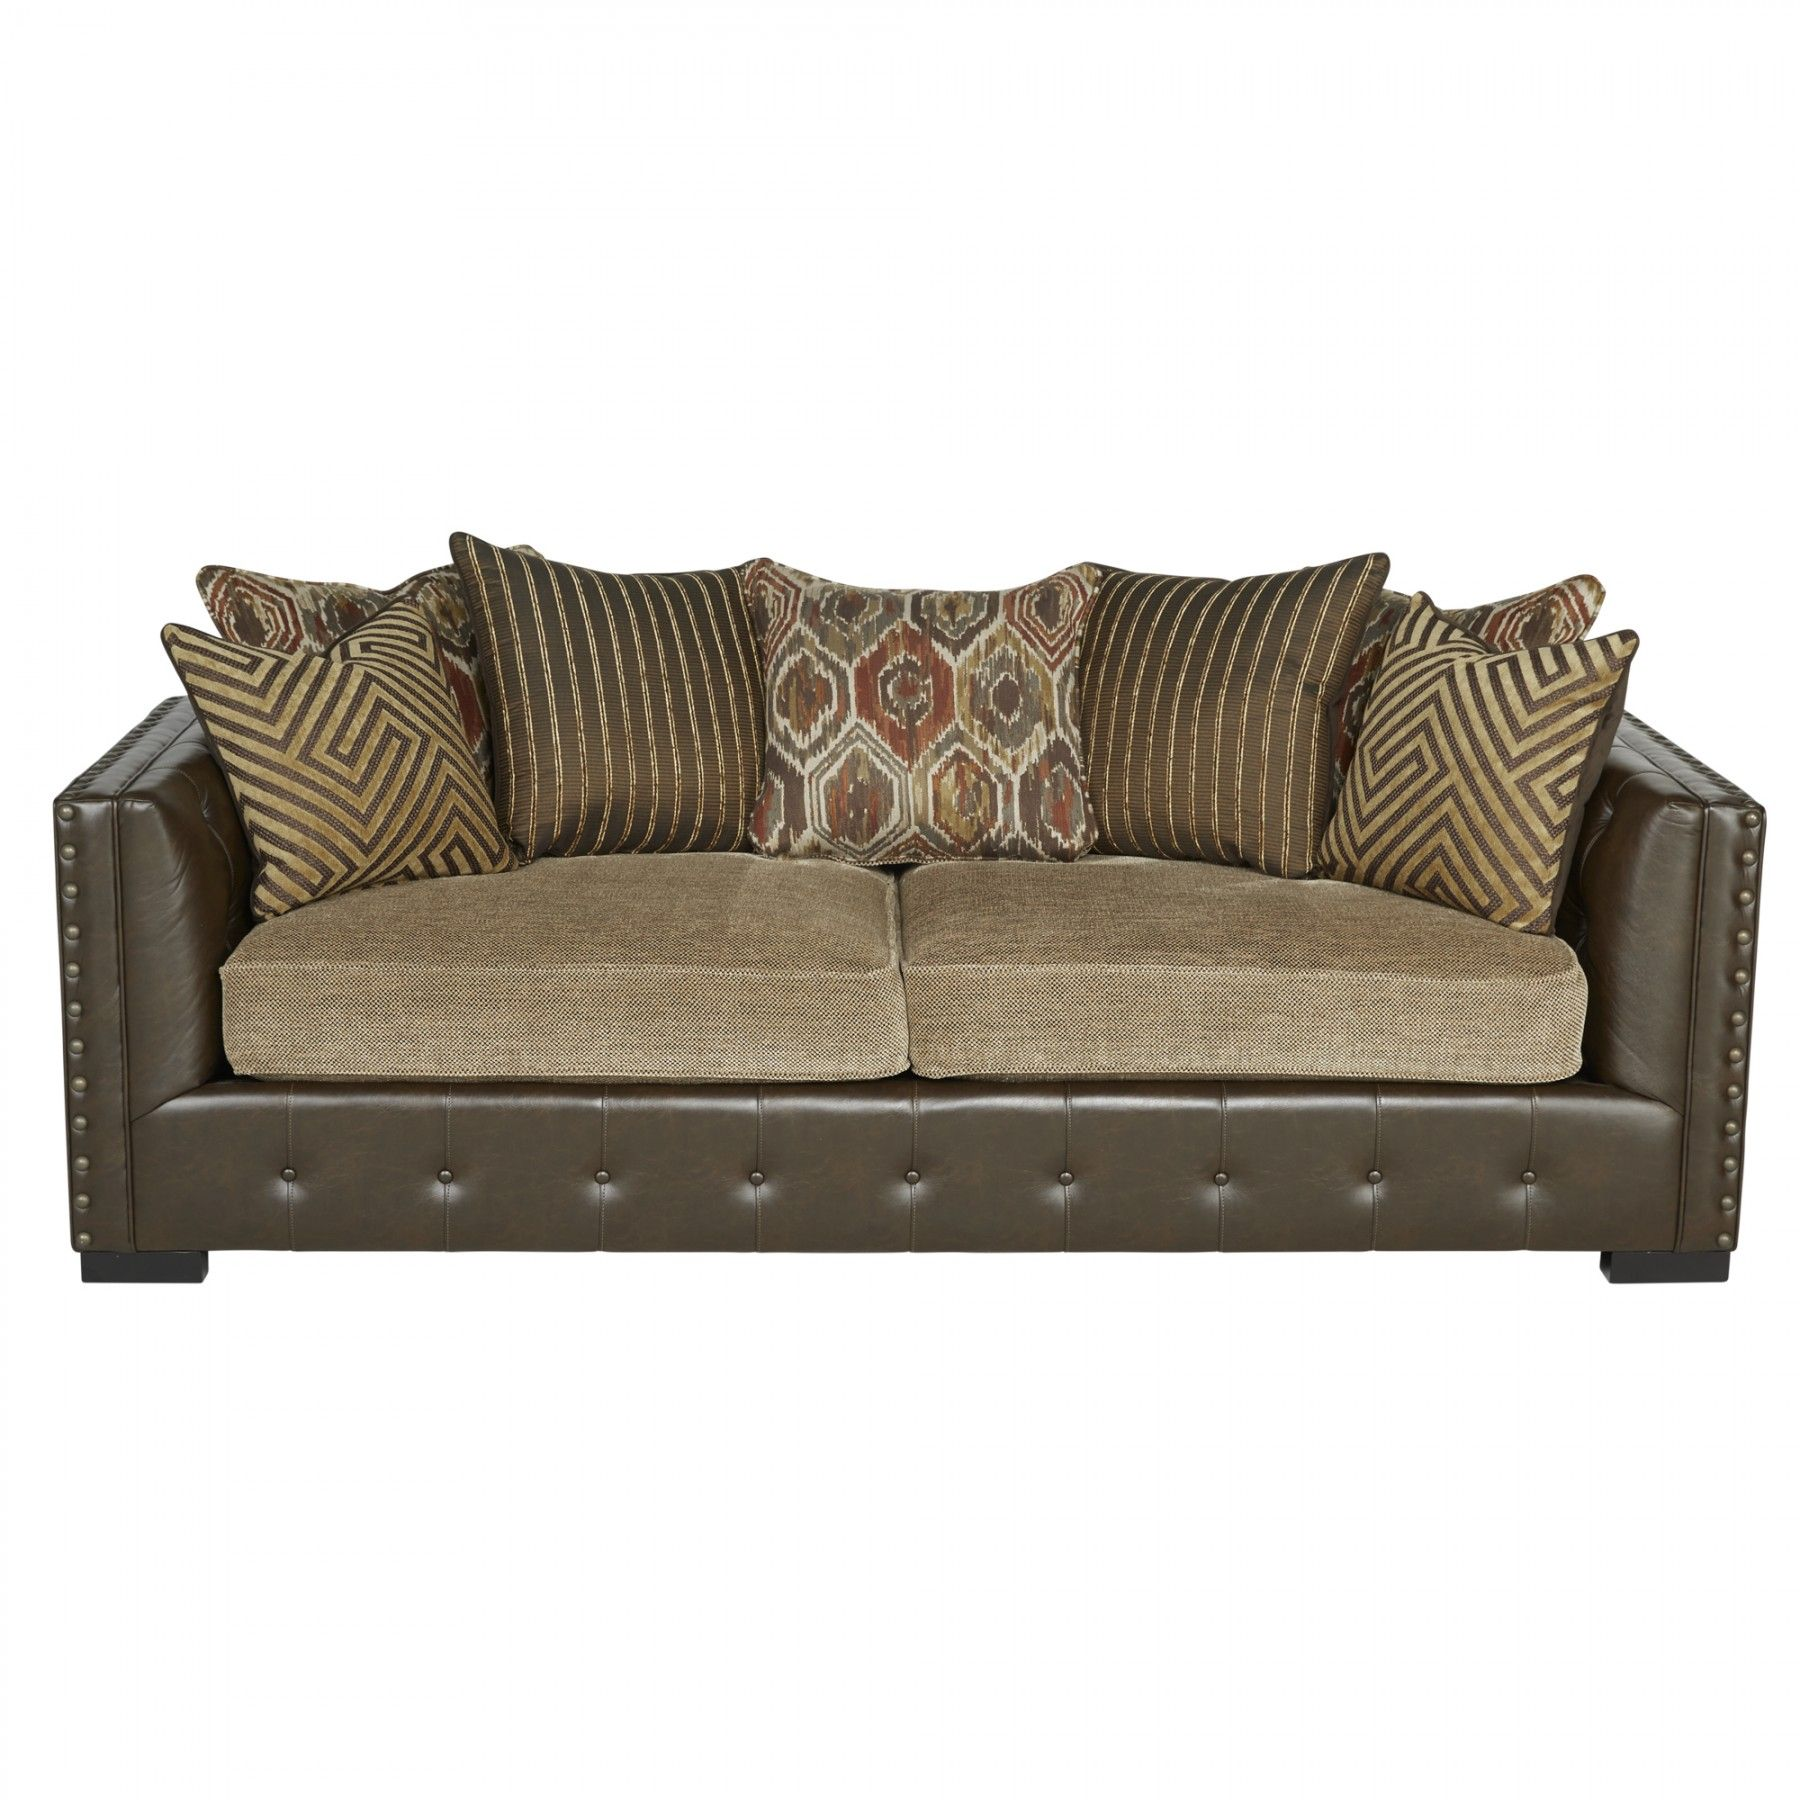 -Traditional Styling -Downblend throw pillows -Tufted mix sofa -Tufted inside arms -Bronze nail heads accenting the frame -Fully padded frame -Look and feel of leather on the body -Multi fabric mix scatter back pillow